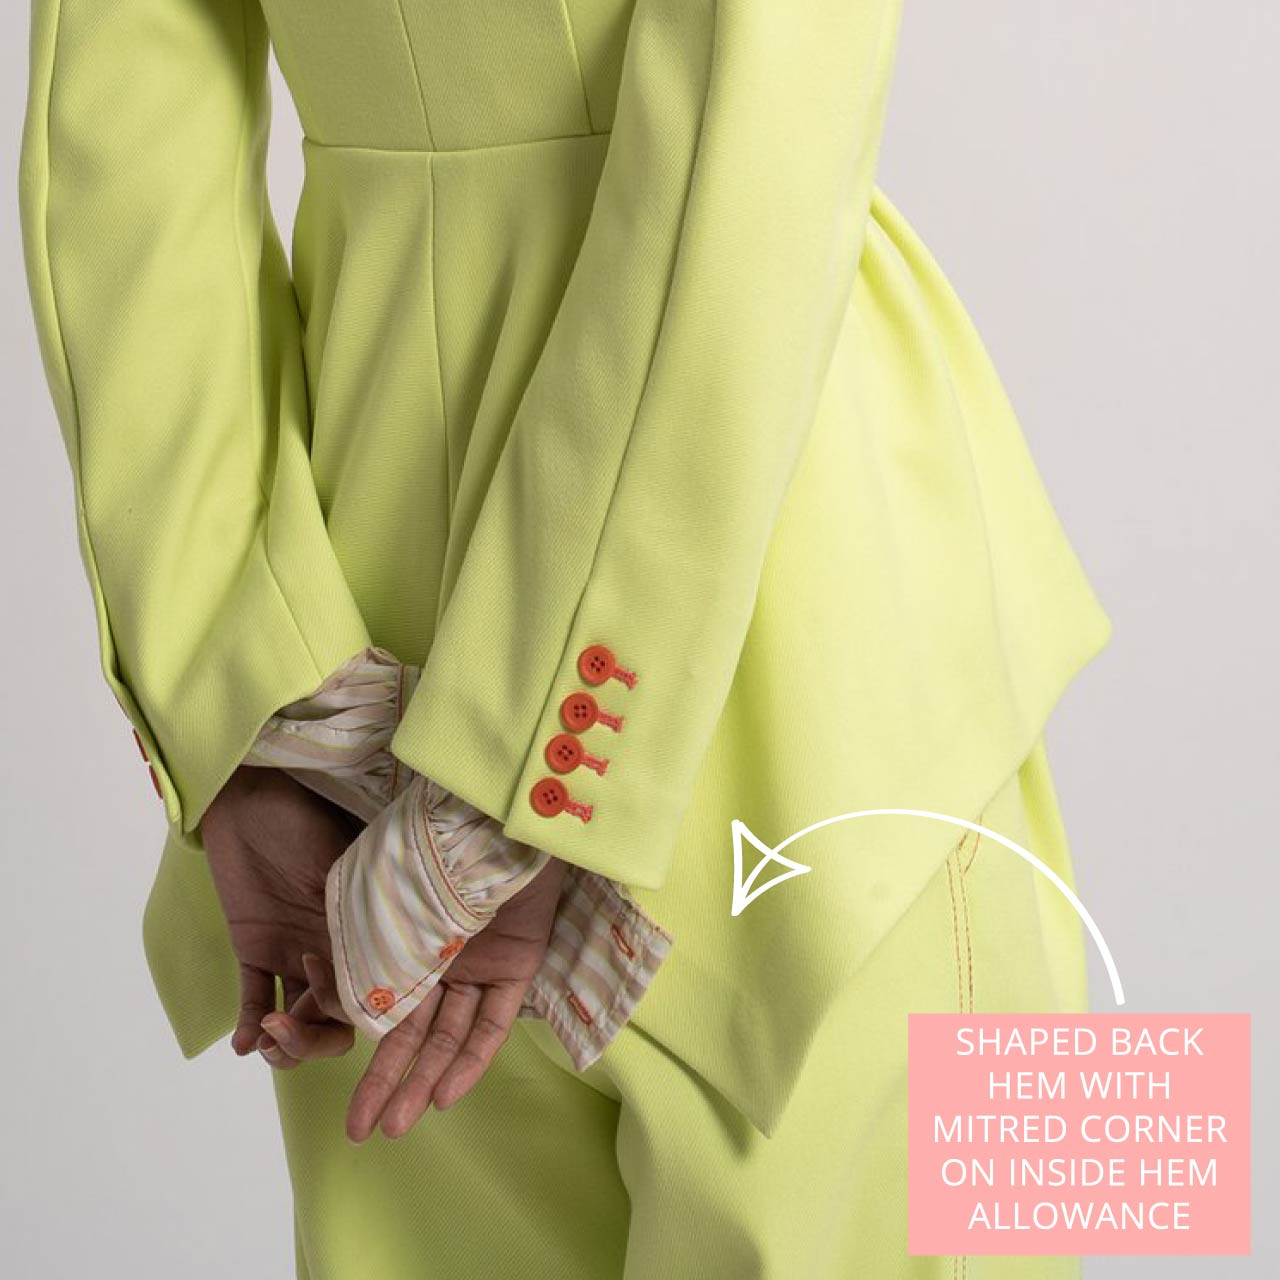 Sies Marjan Jacket Details   The Cutting Class. Haru Twill Waisted Jacket with shaped back hem with mitred corner on hem allowance.